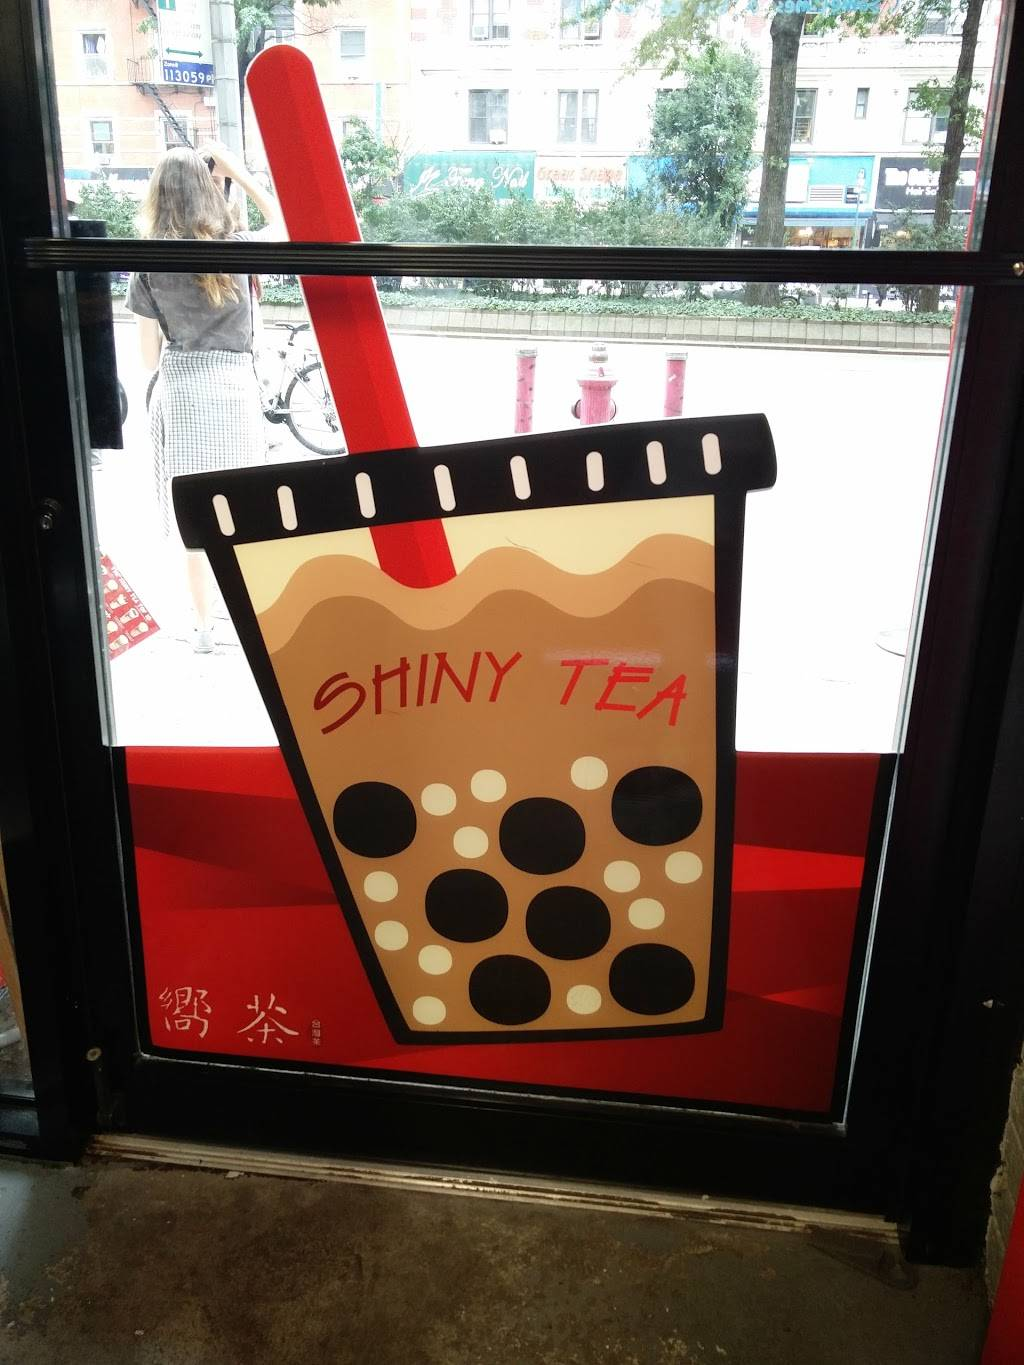 Shiny Tea UWS | cafe | 2667 Broadway, New York, NY 10025, USA | 2122226134 OR +1 212-222-6134